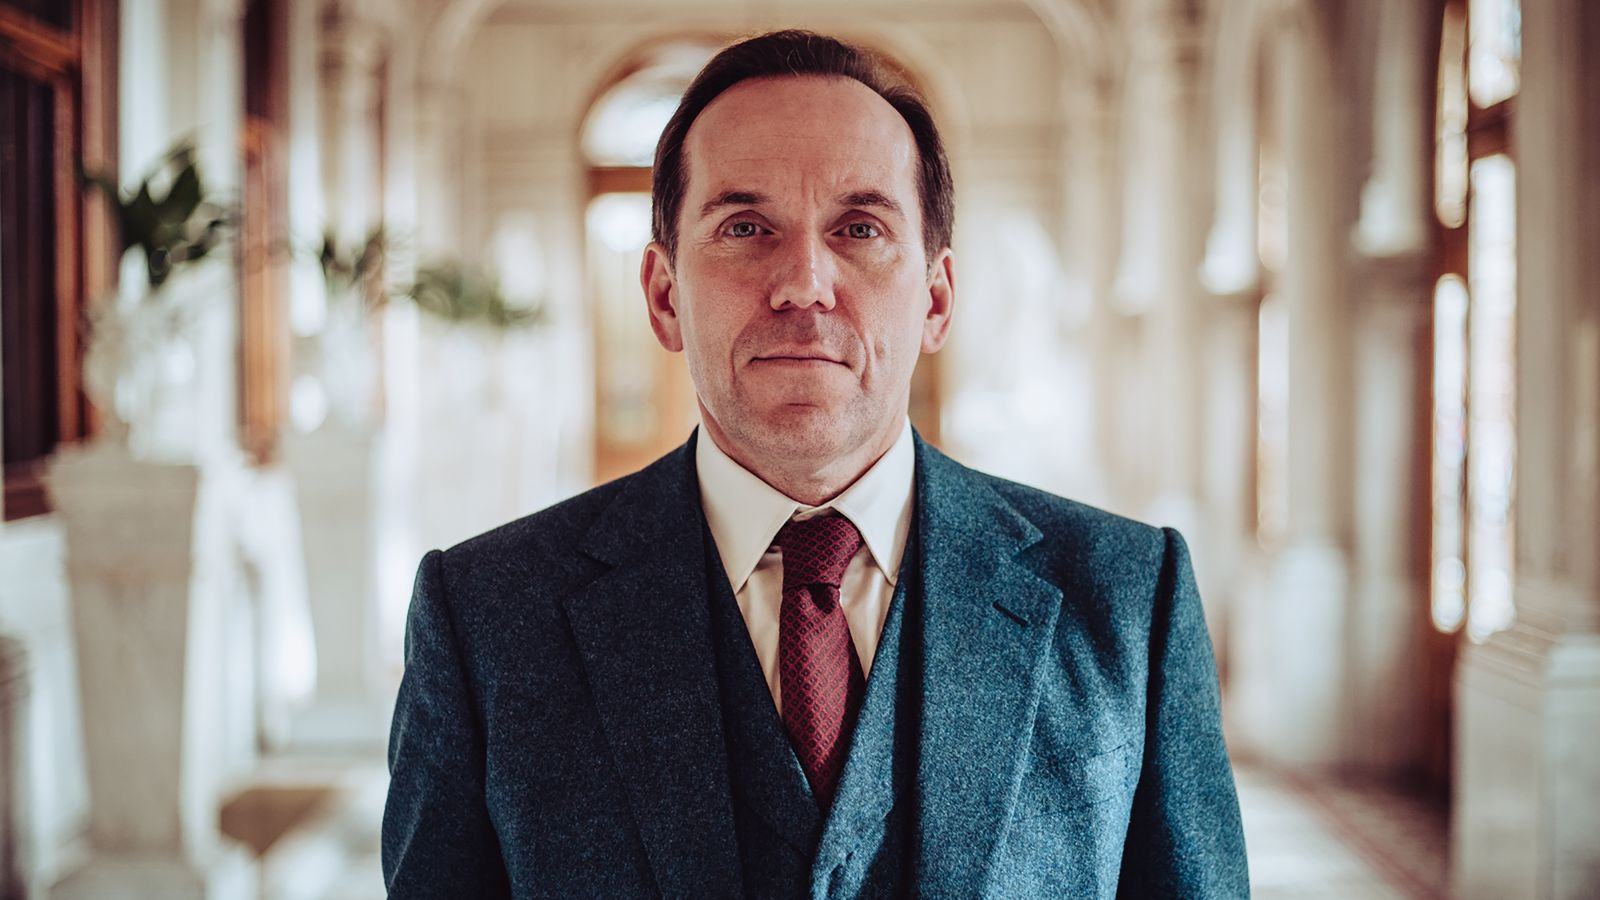 Ben Miller opens up about struggling with OCD as crime drama Professor T highlights condition